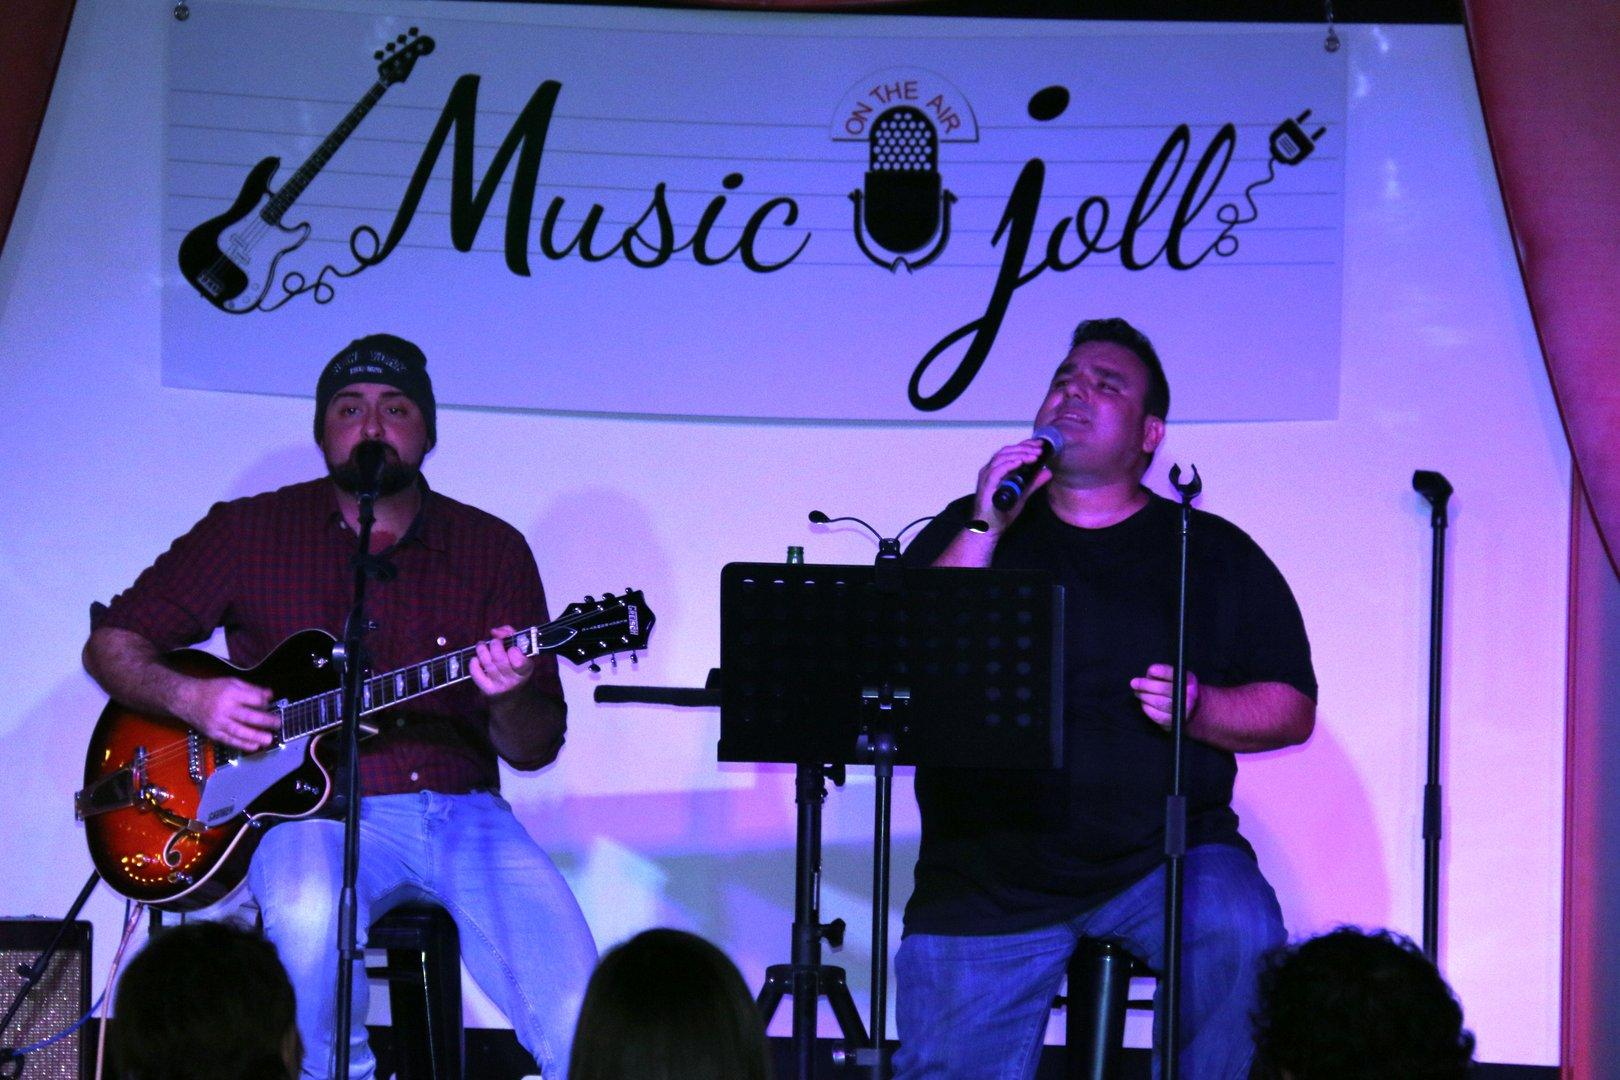 Concierto de Suite dreams en Music Joll.